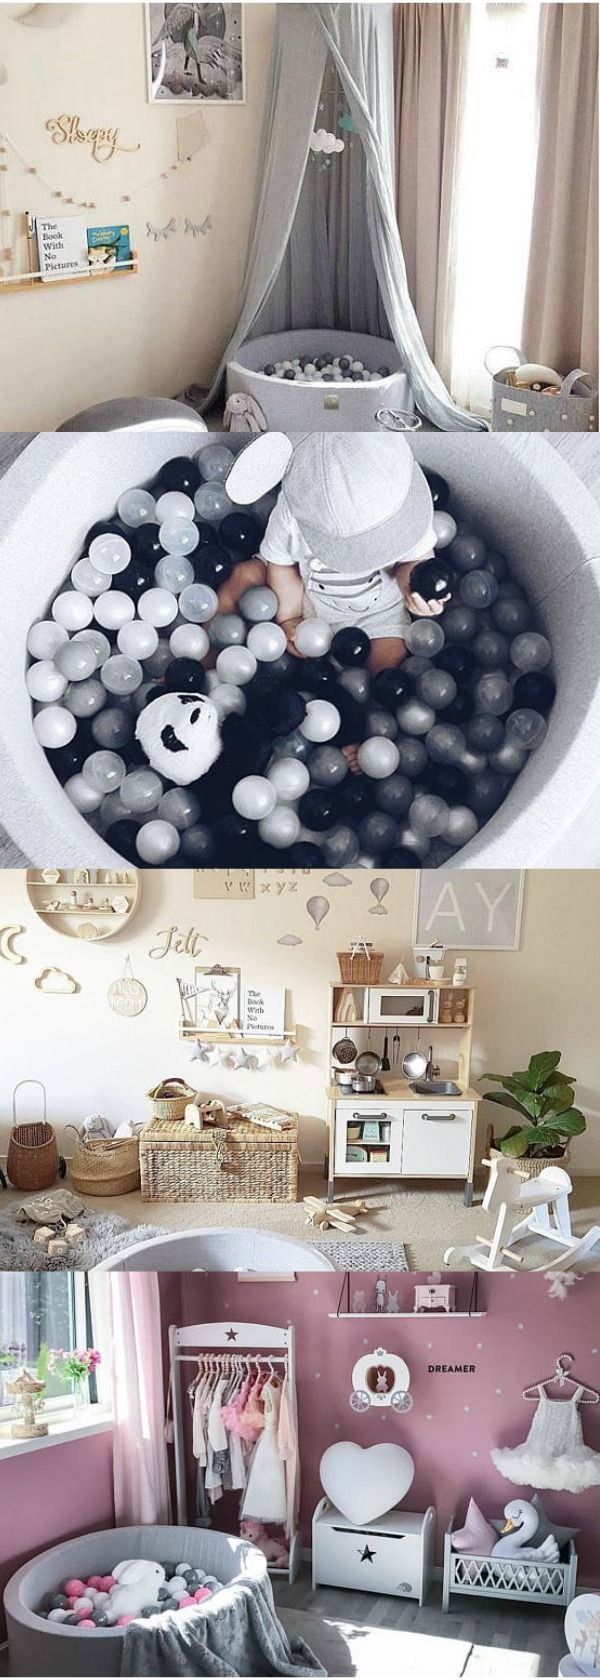 Gray Dry Ball pit GRAY with 250 High Quality Plastic balls For Baby Kids Children Dry Pool bällebad Modern Nursery Decor Kids Toy Gift #nurserybedroomdecor #ad